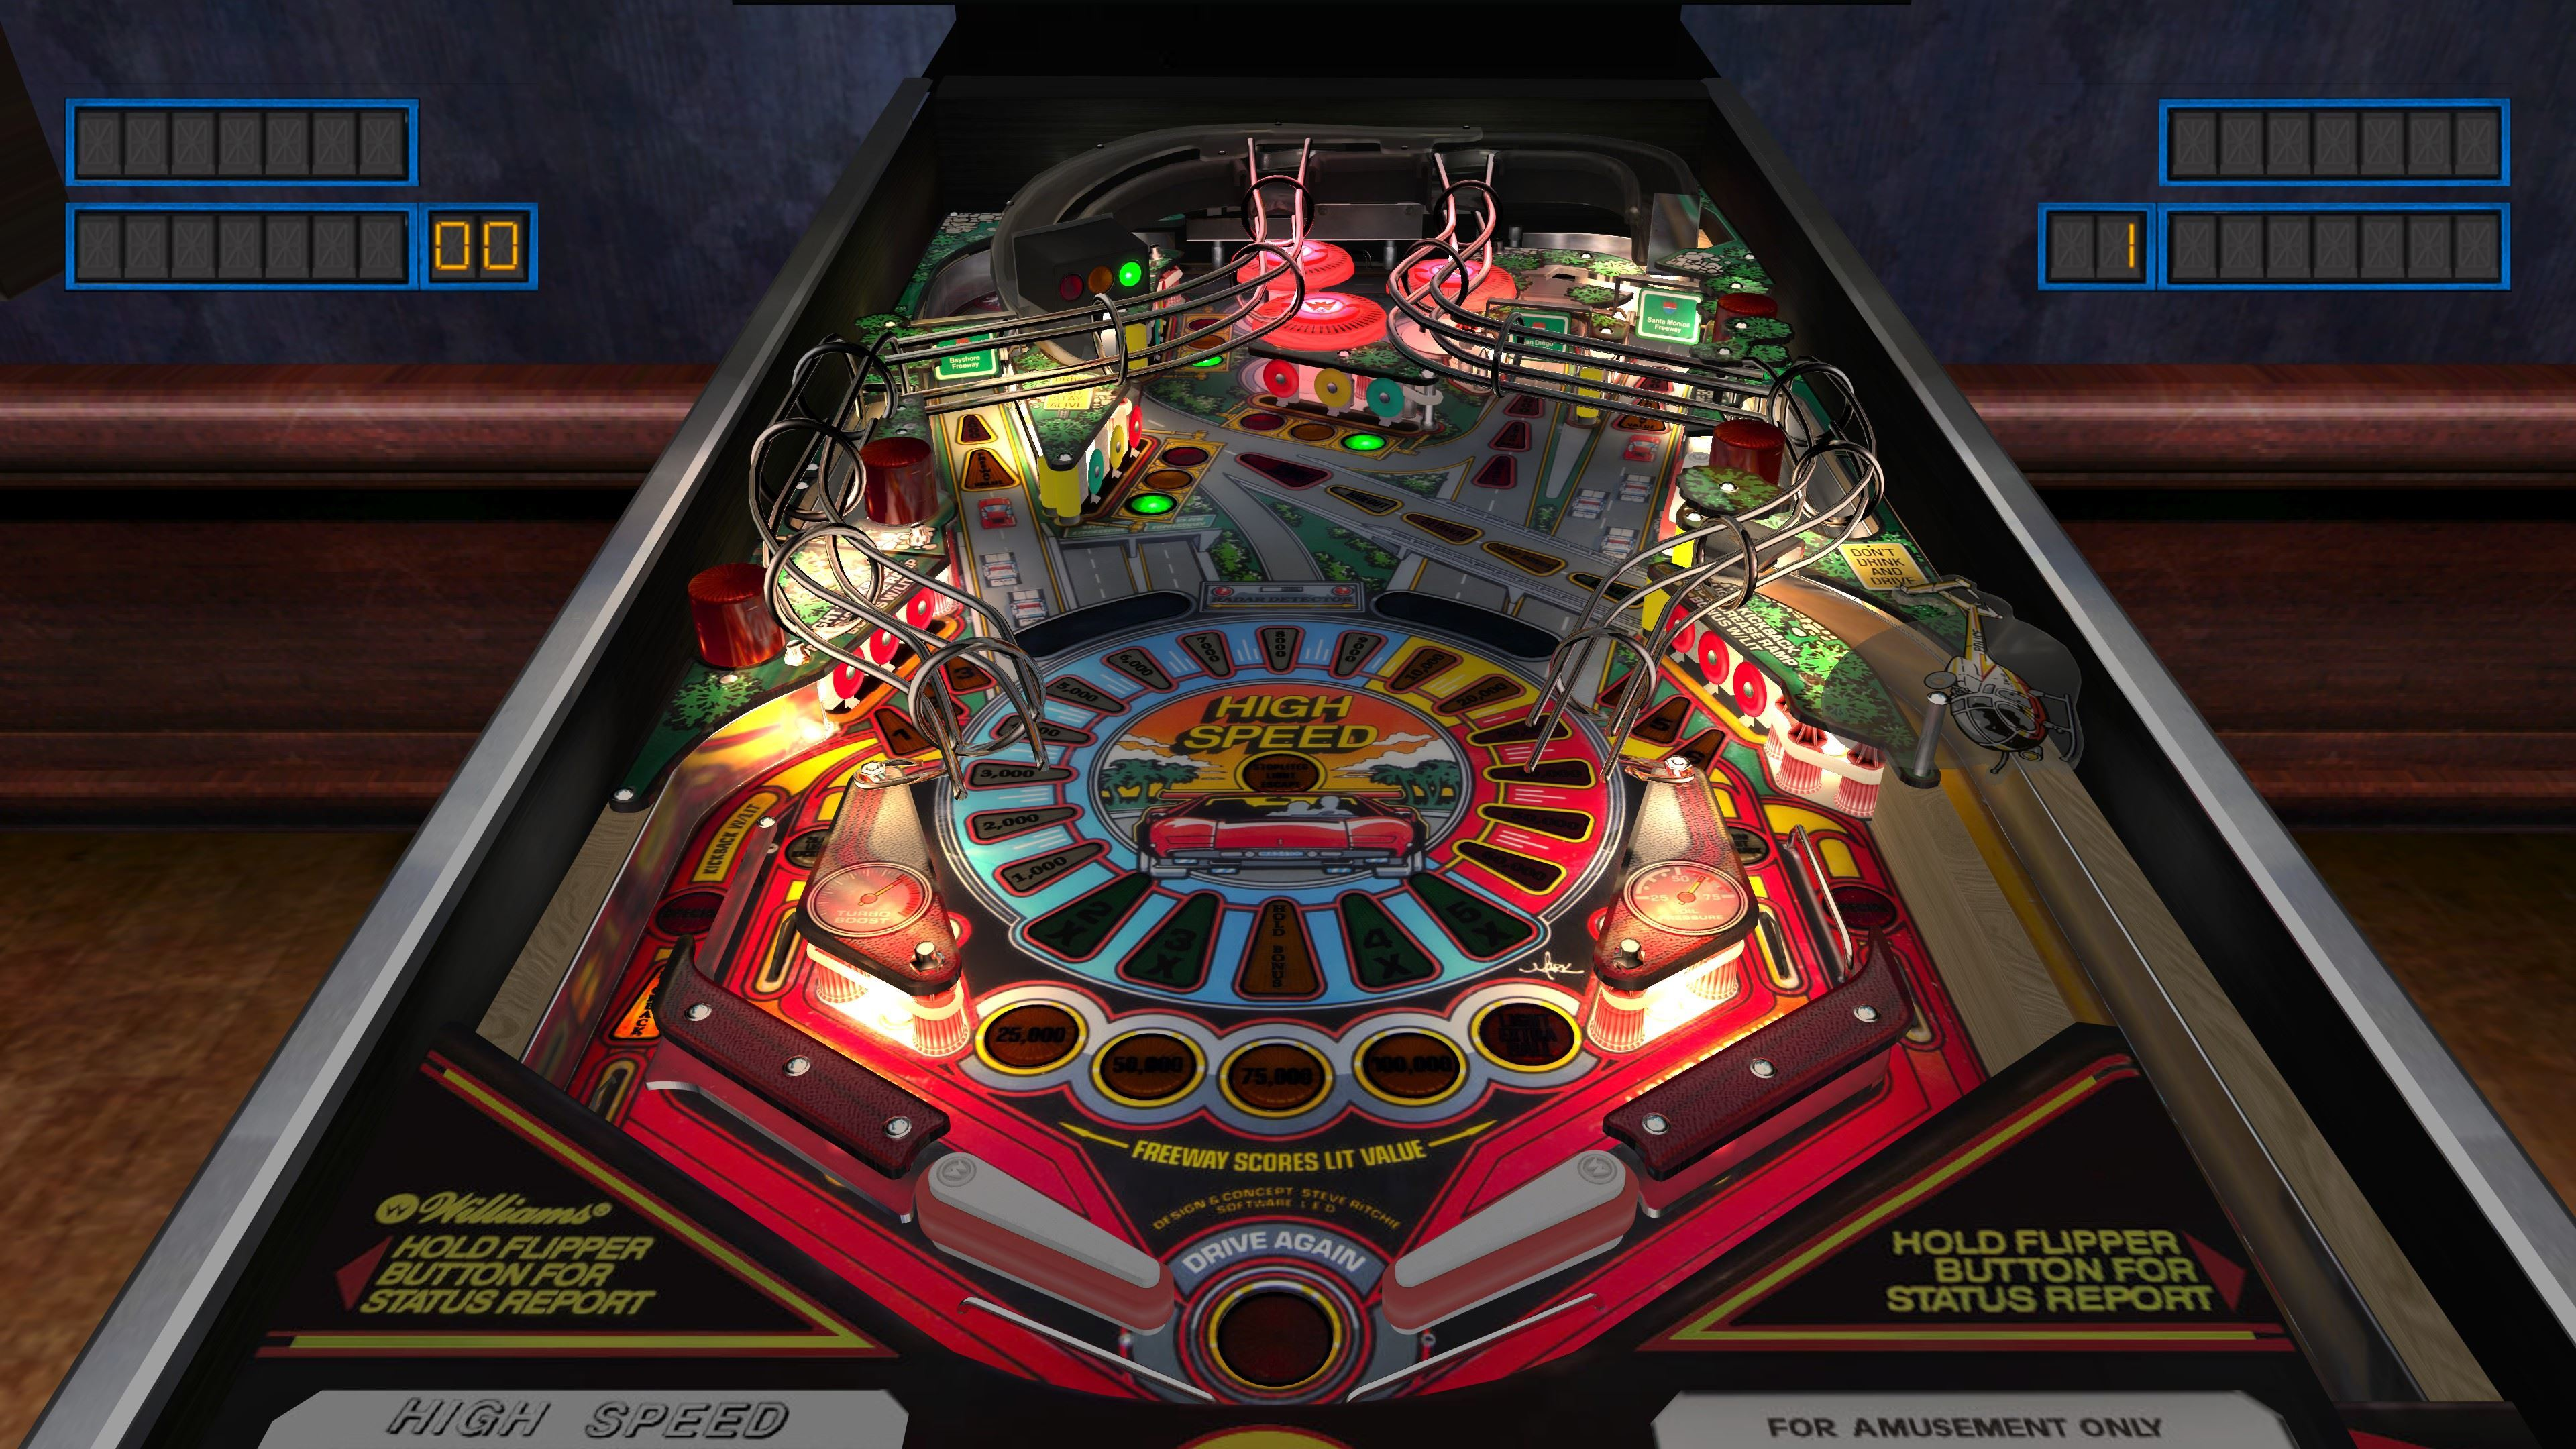 Pinball Arcade from Farsight - Games - Quarter To Three Forums